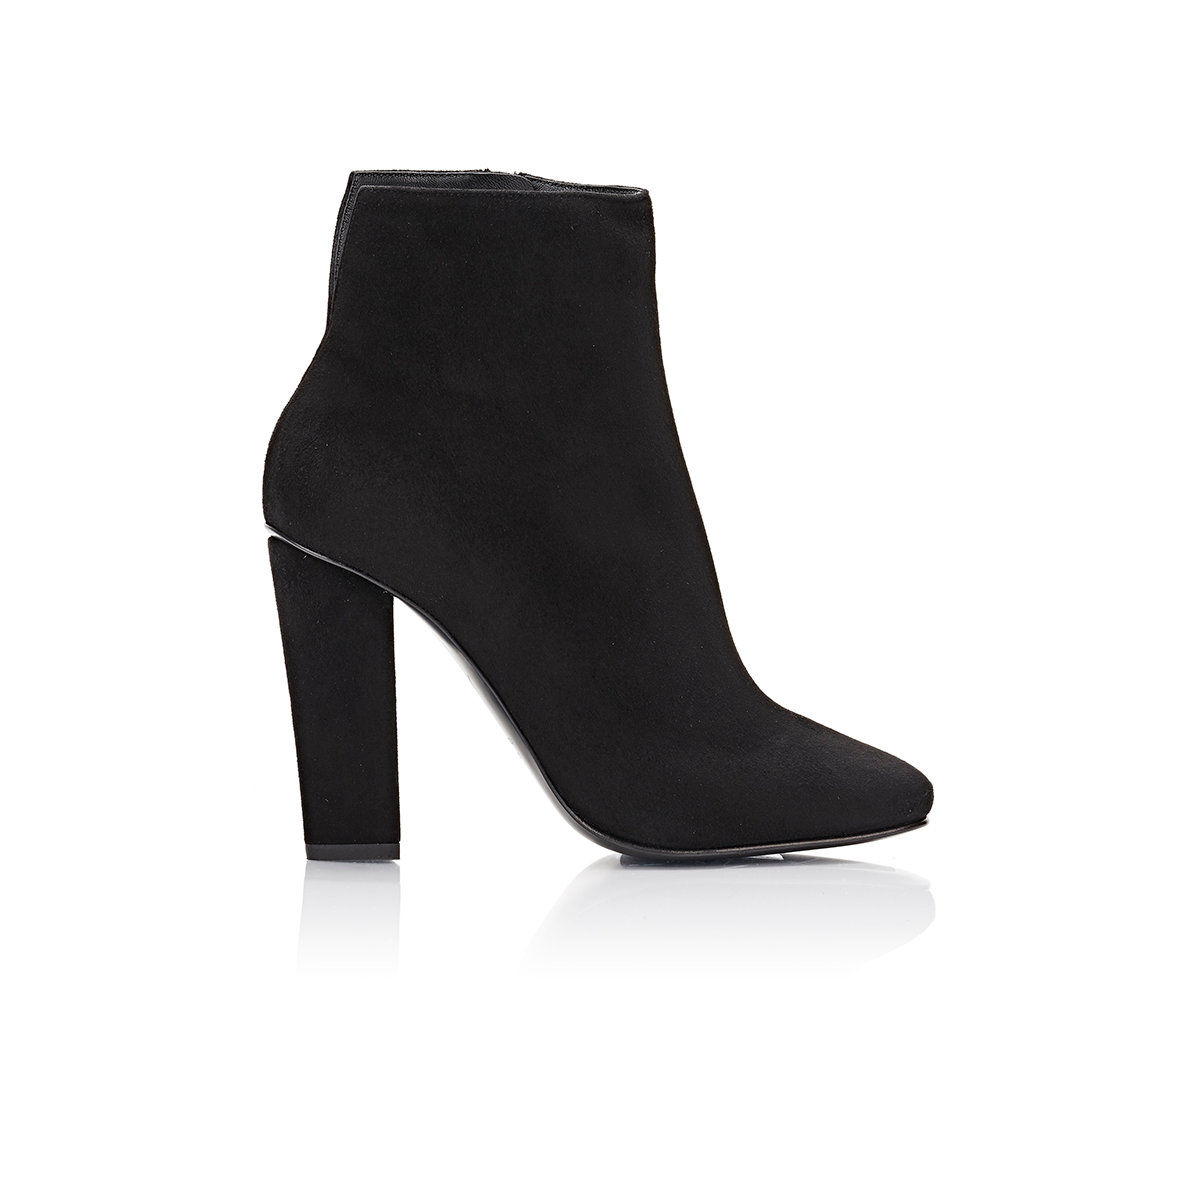 giuseppe zanotti s suede square toe ankle boots in